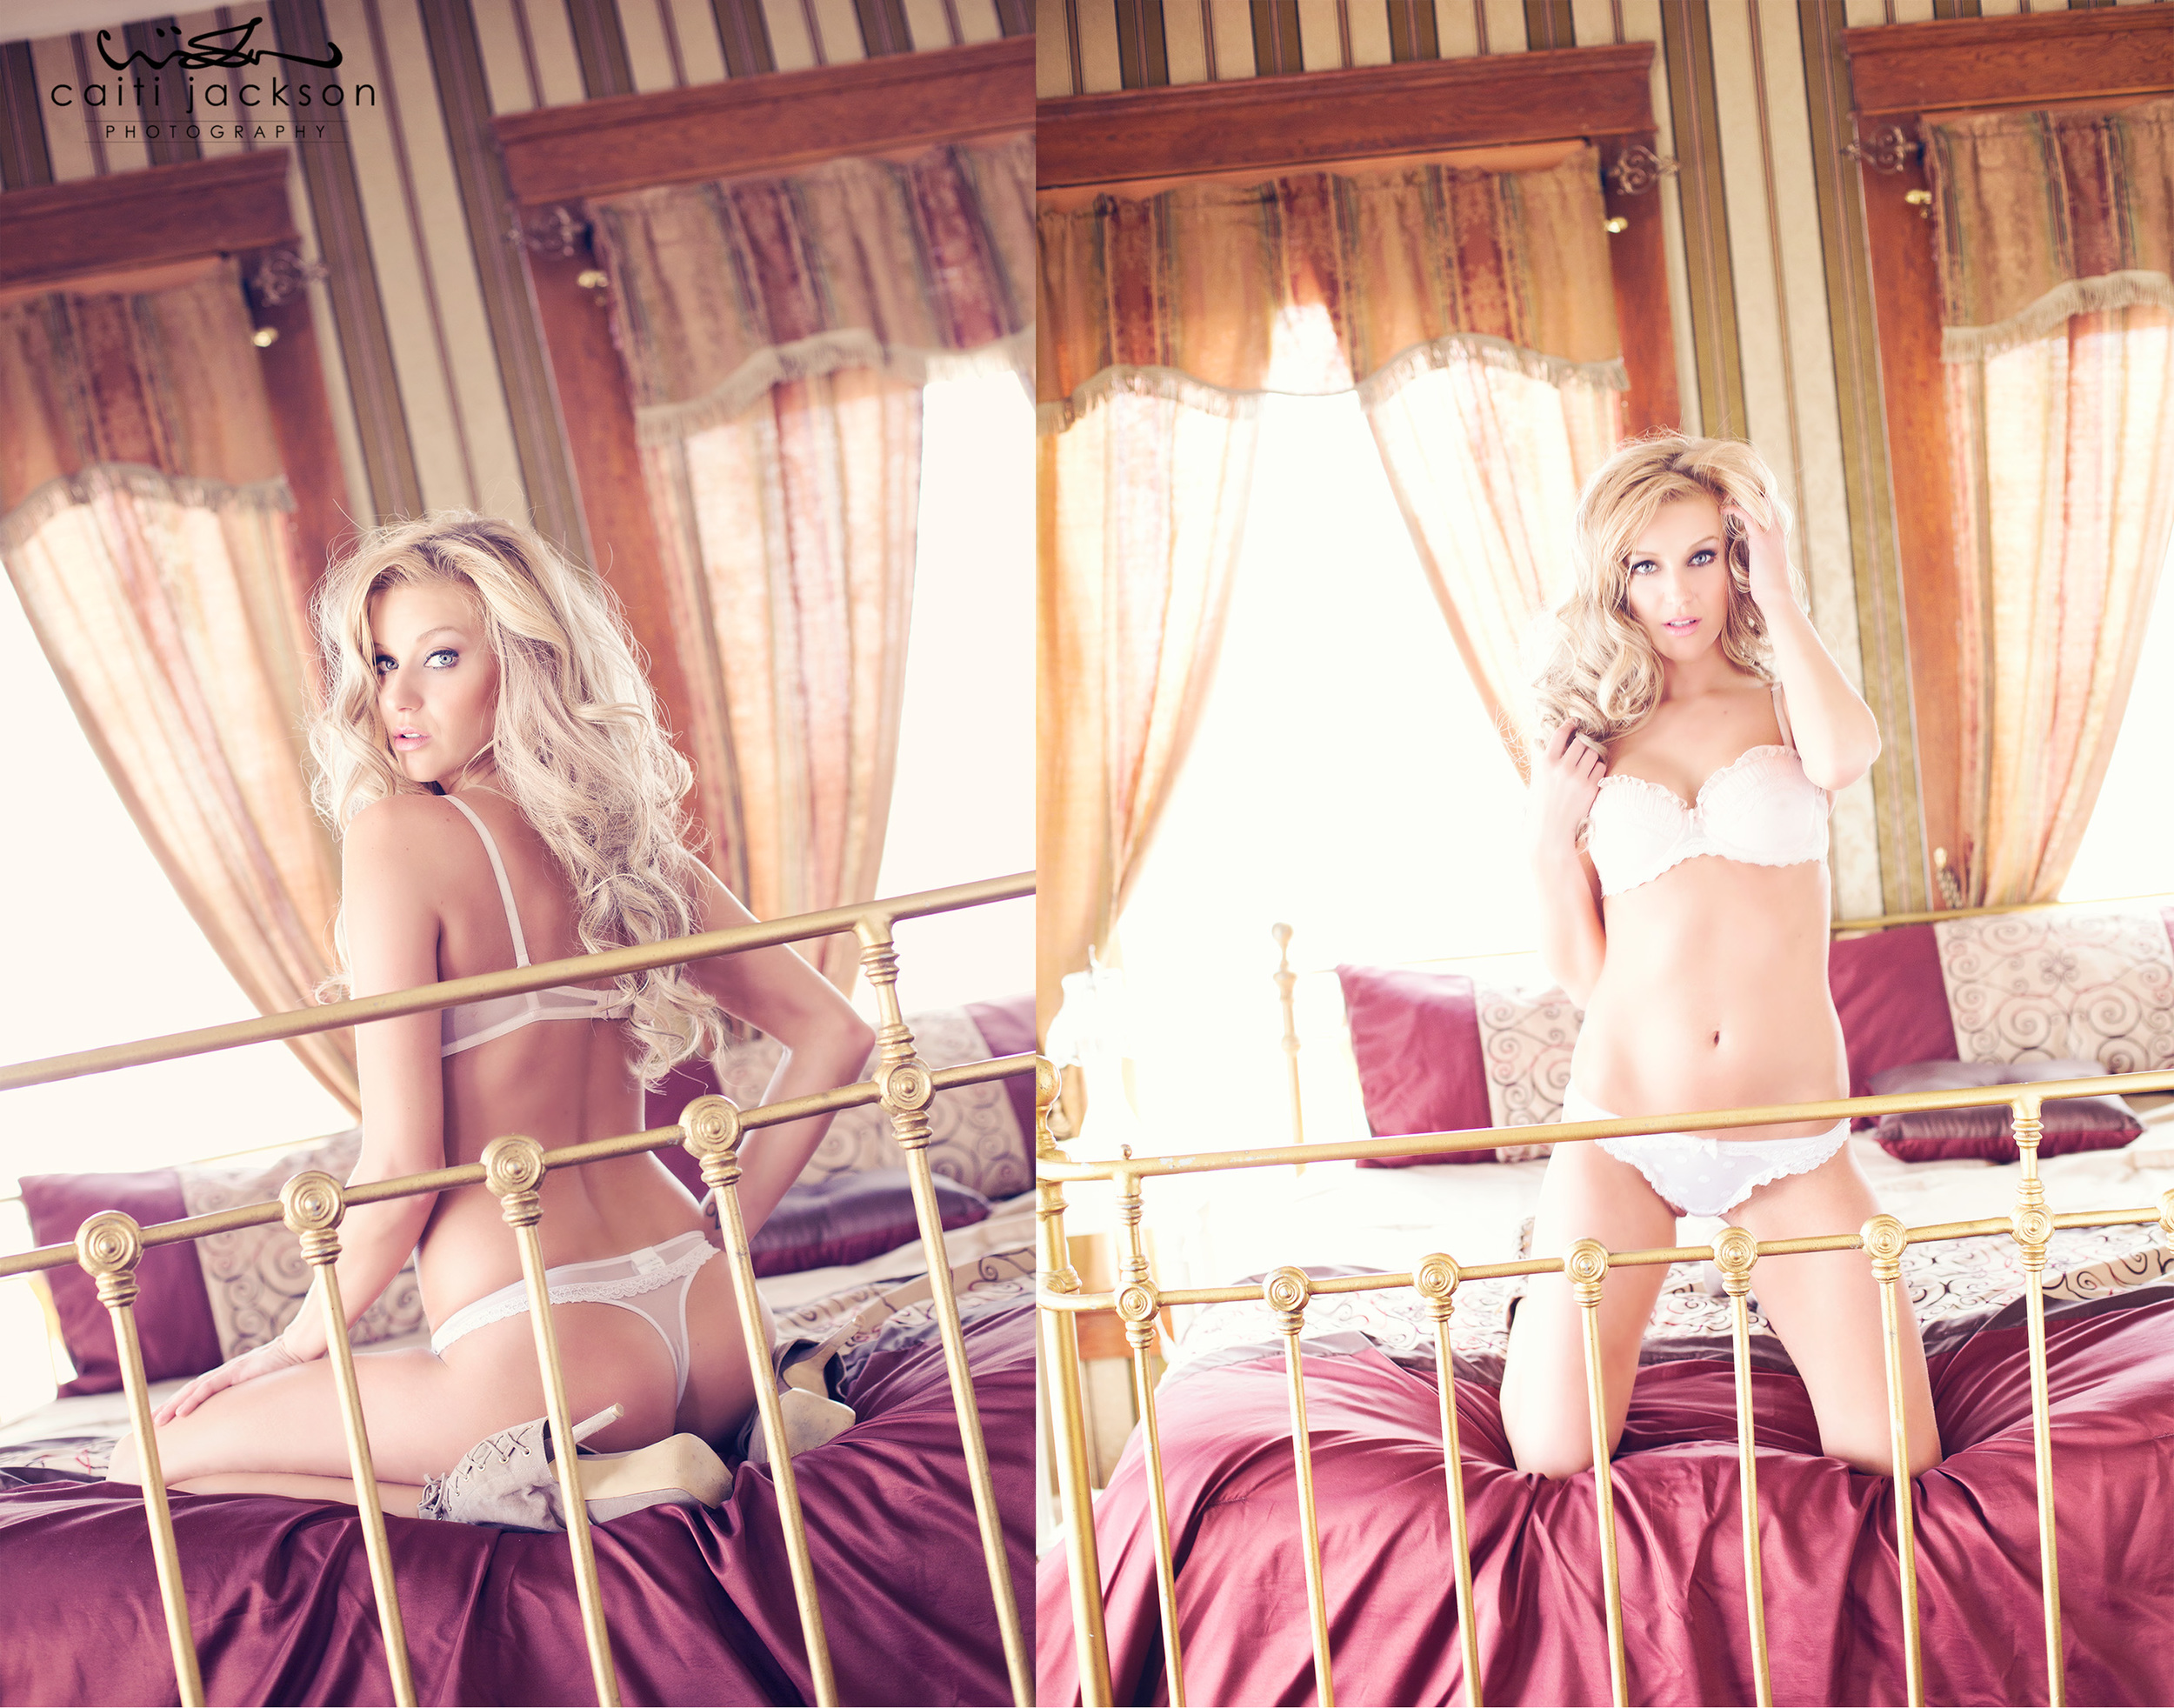 bridal boudoir, bridal session, bridal photography, caiti jackson photography, wedding photography, gillette, wyoming wedding photographer, model photography, modelfolio, professional photography, professional portrait photography